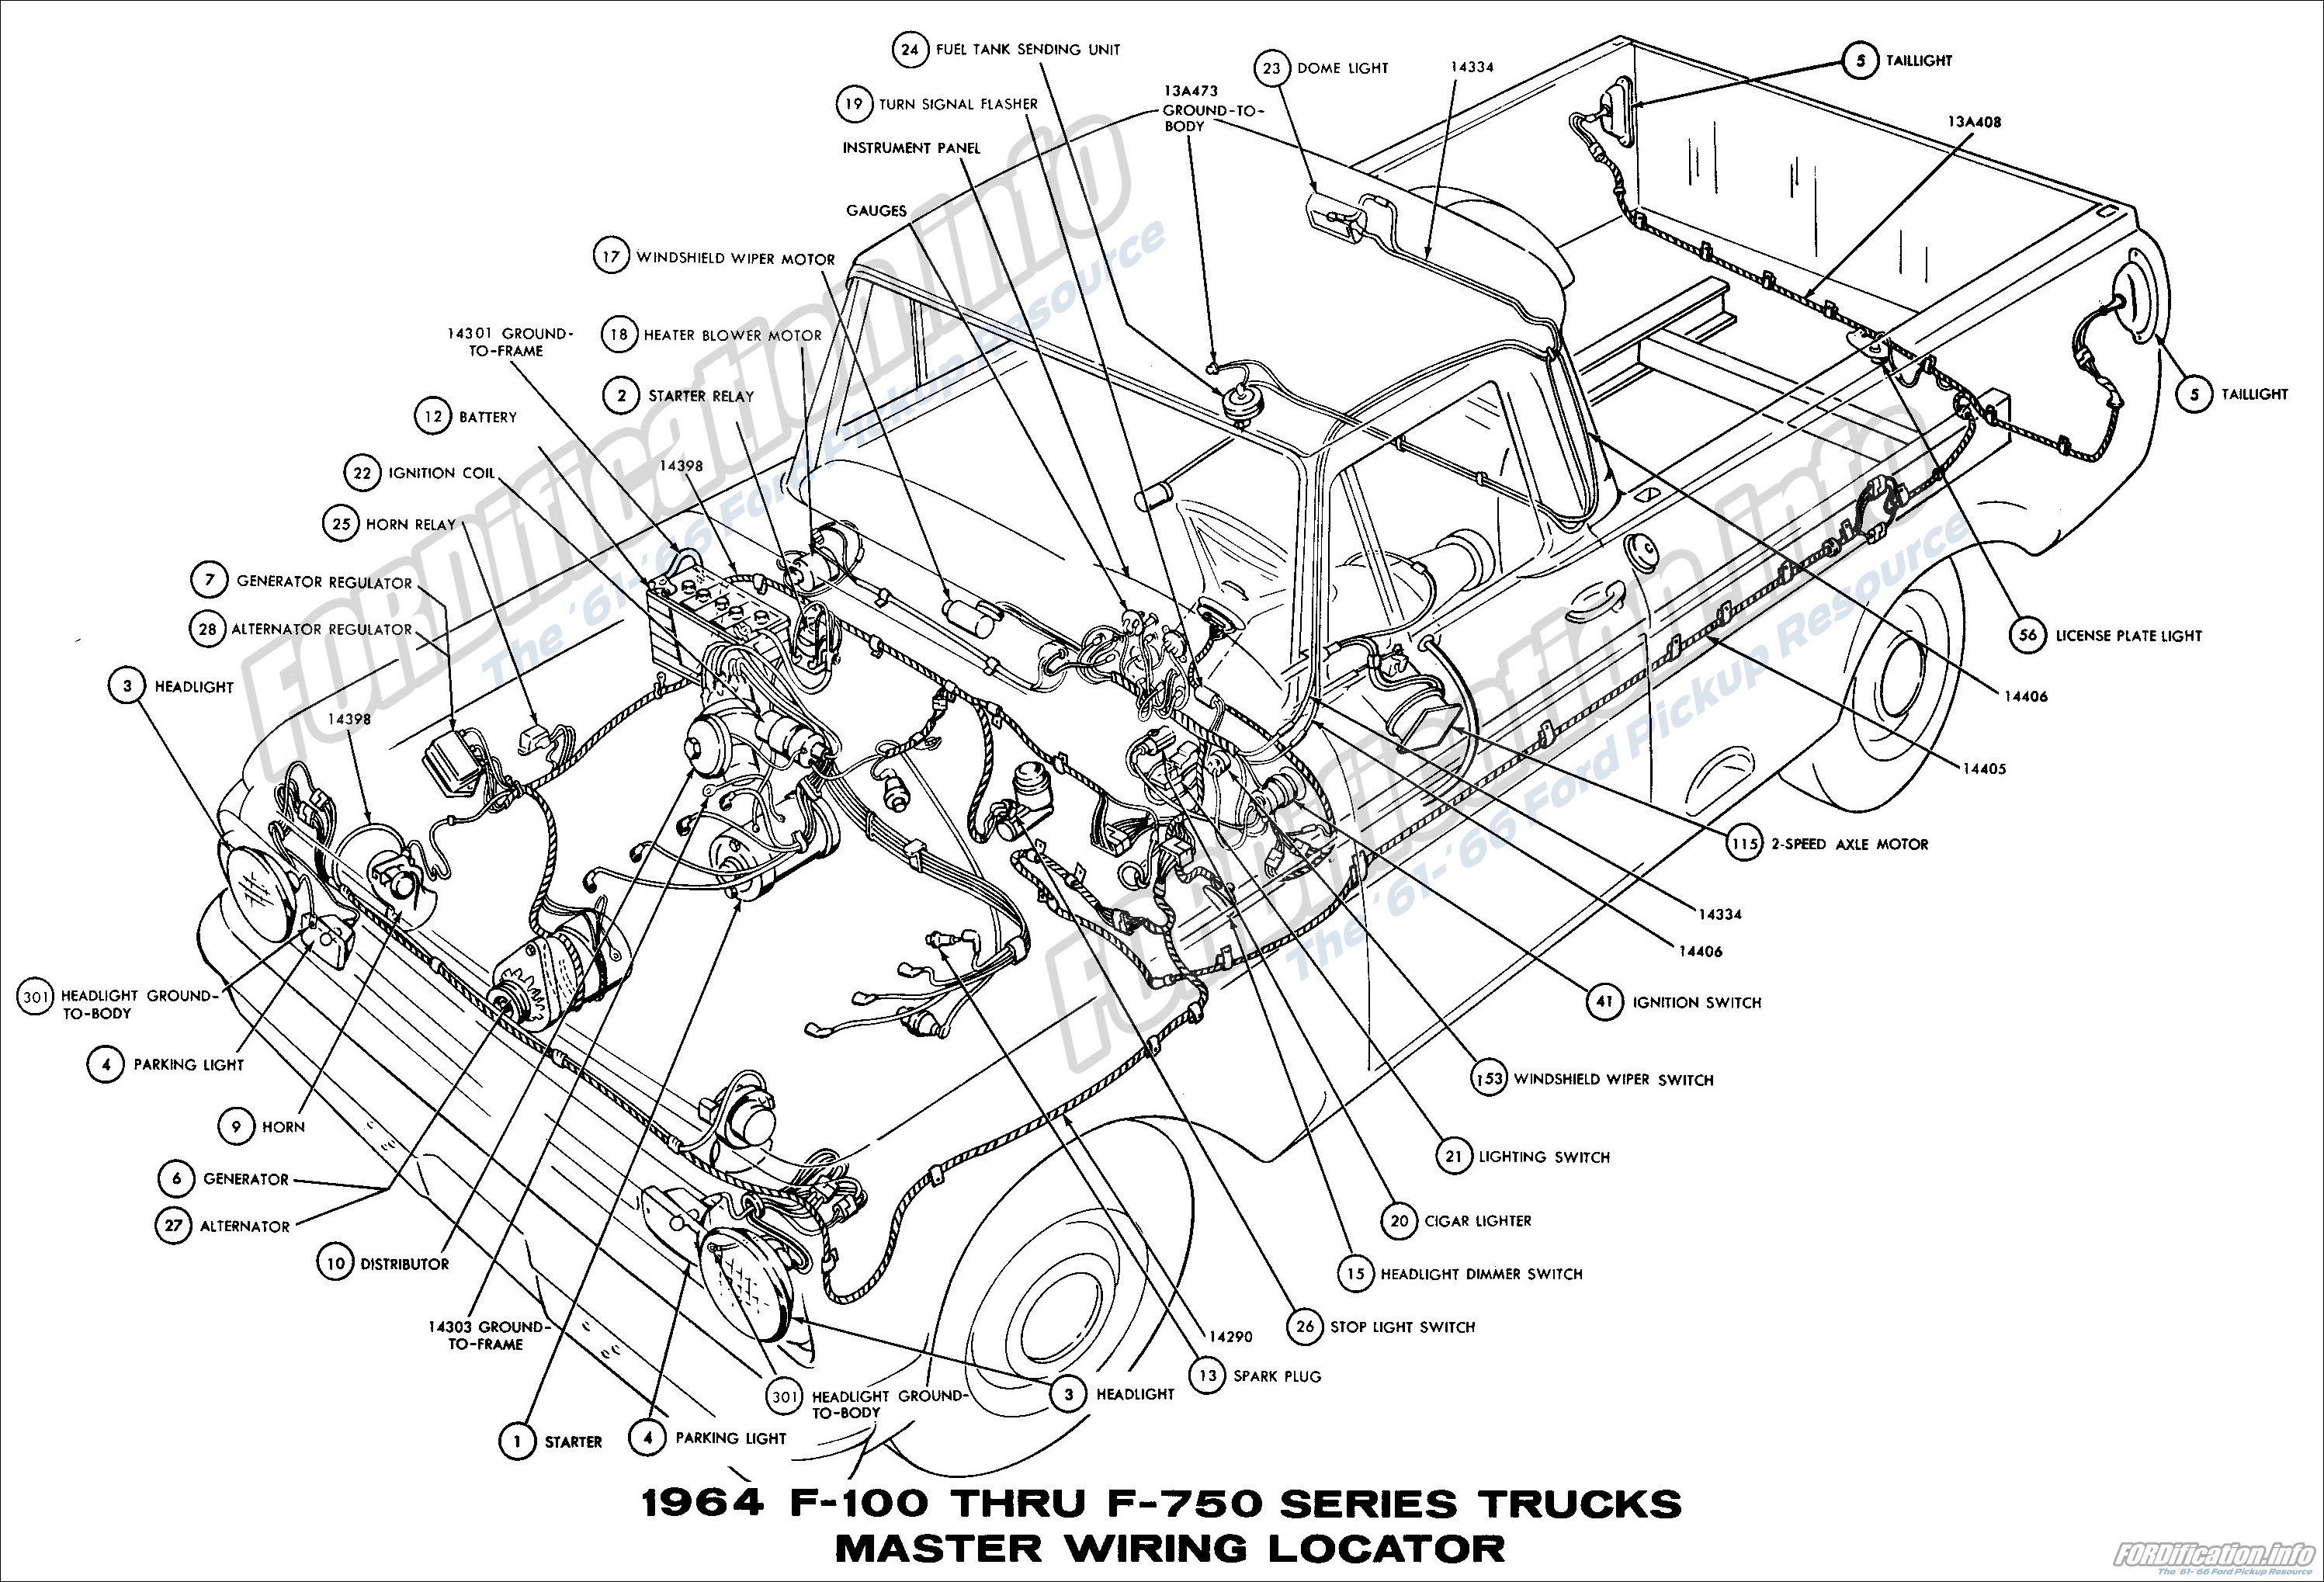 1964 F100 thru F750 Series Trucks Master Wiring Locator